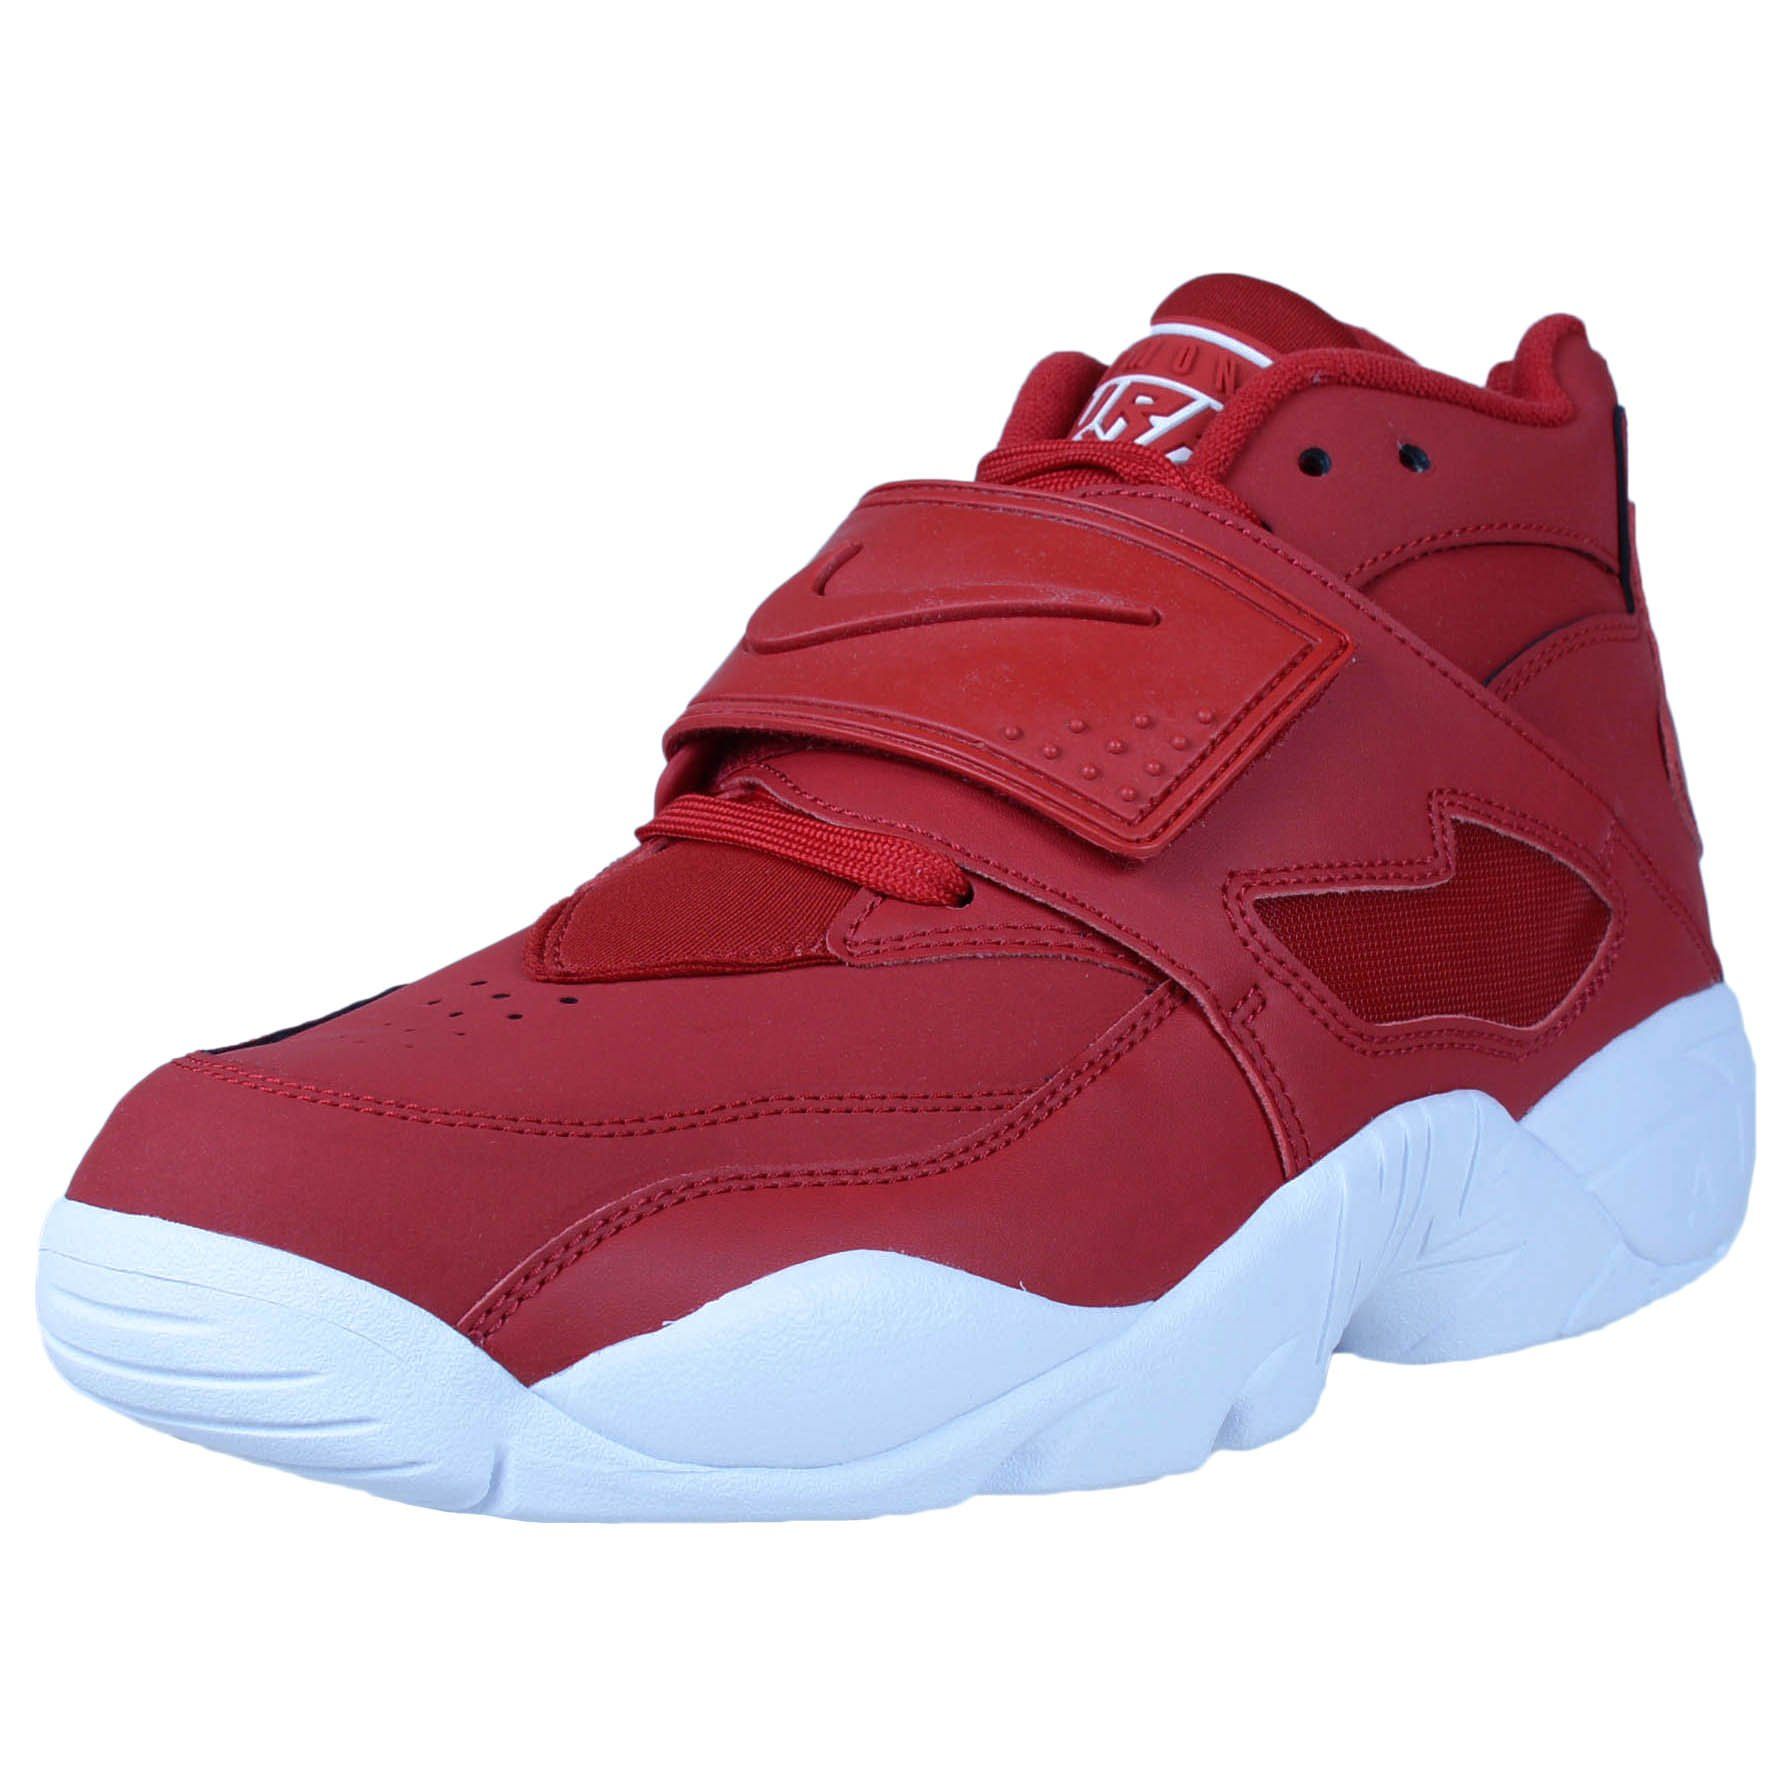 Nike Air Diamond Turf Gym Red/Gym Red-White (12 D(M) US) by Nike (Image #1)